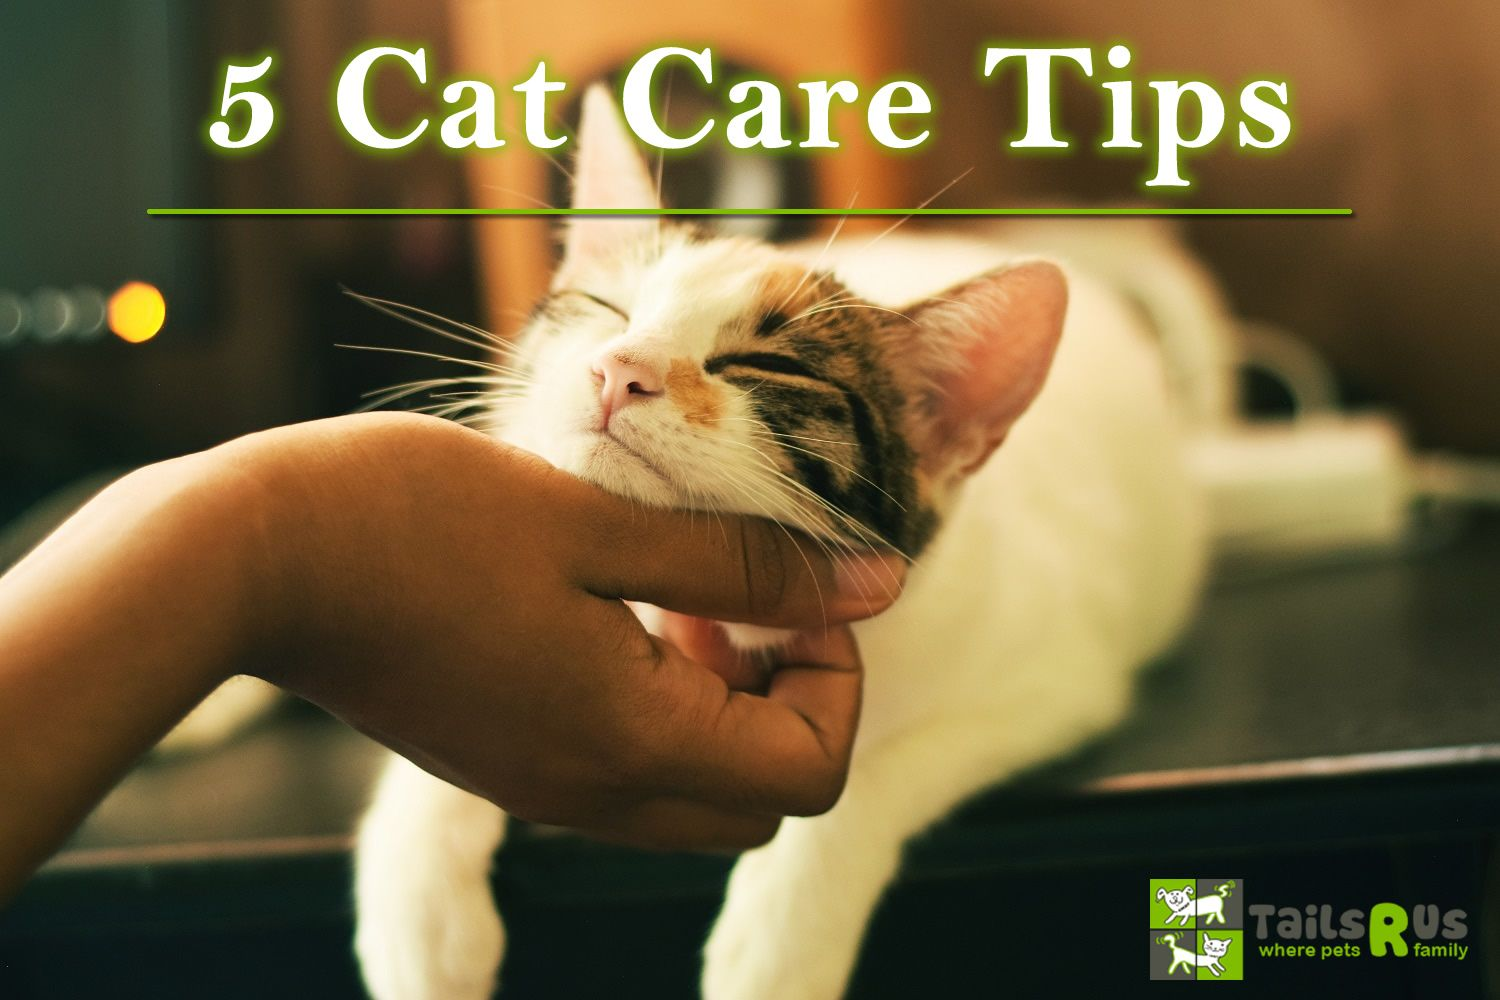 Here are 5 cat care tips you should keep in mind 1. Clip